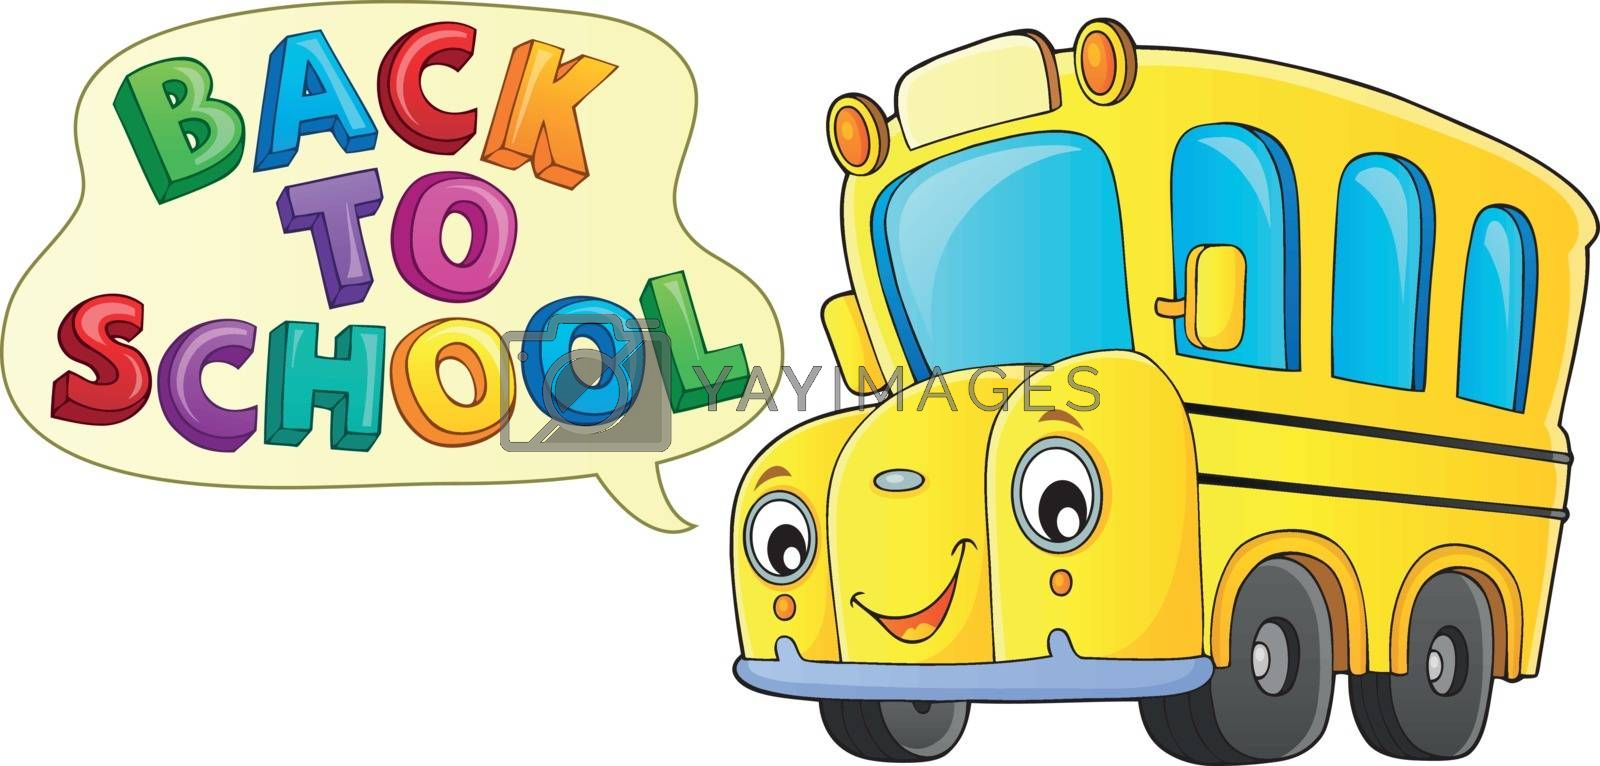 Back to school topic 9 - eps10 vector illustration.